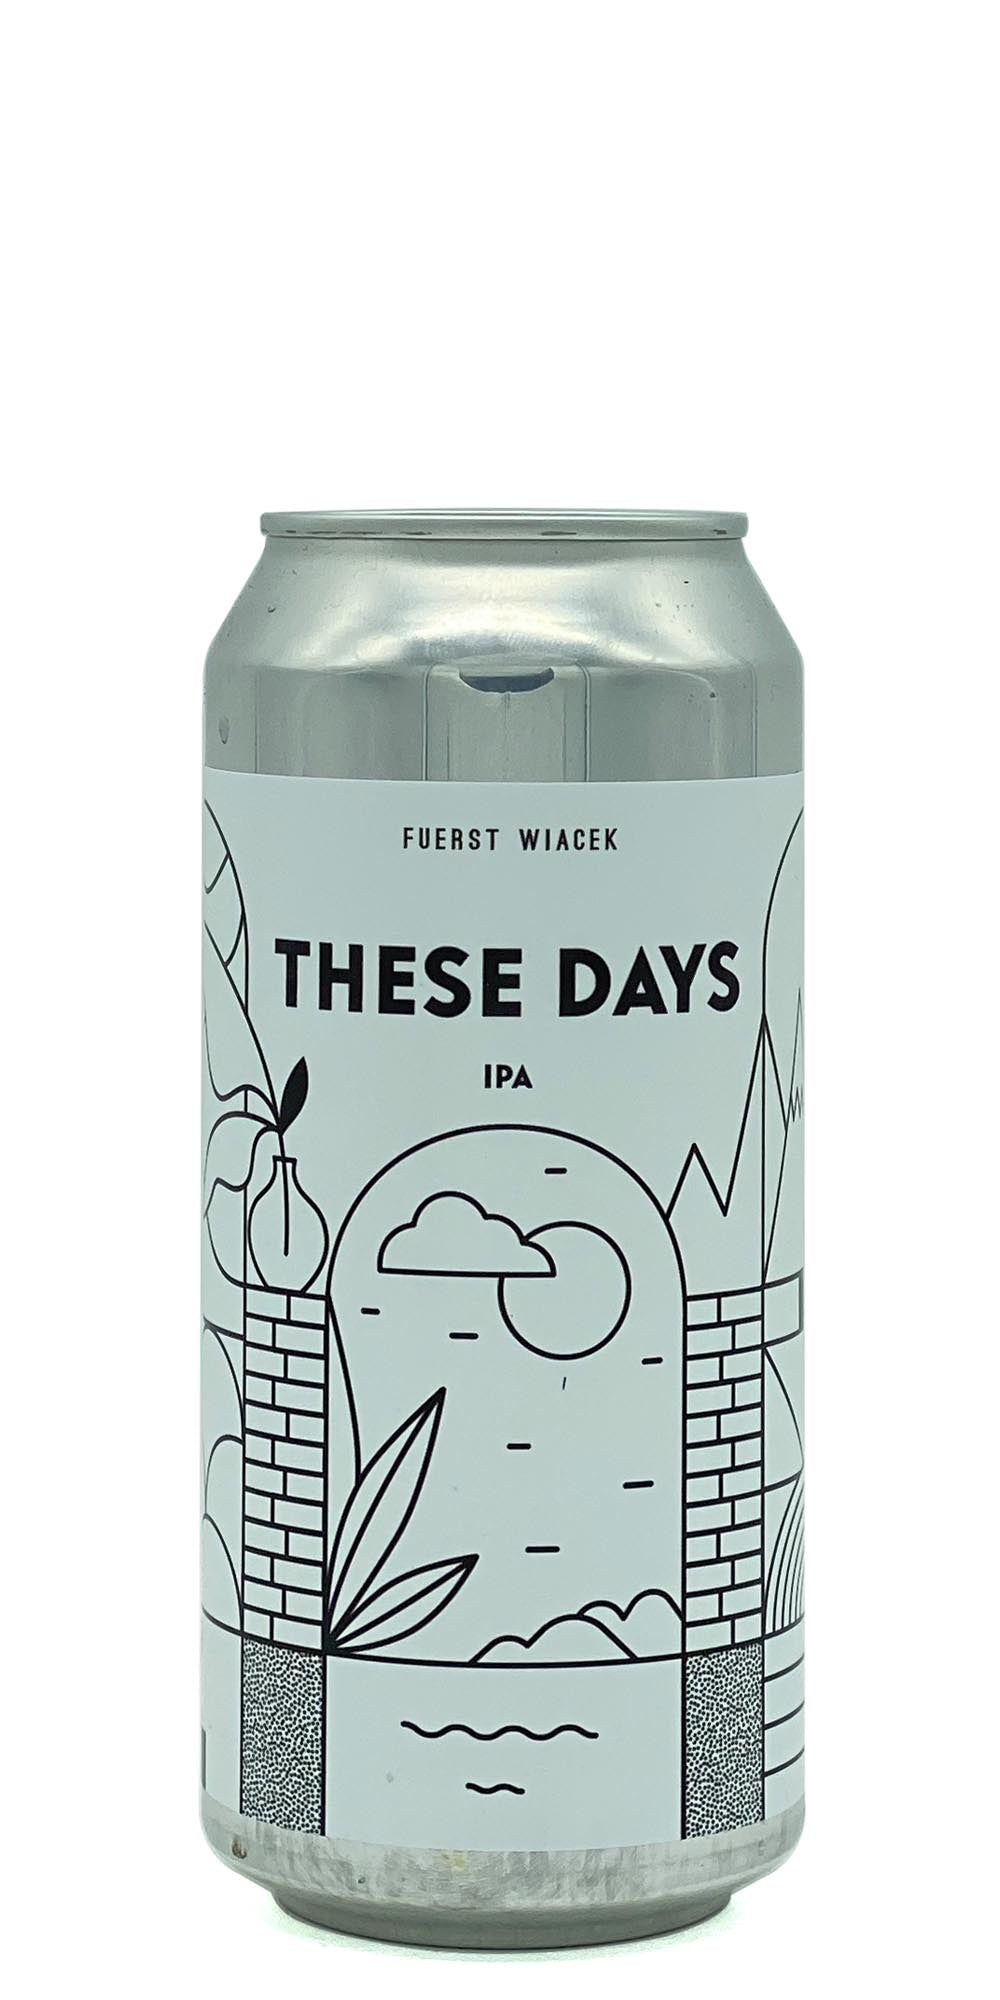 Fuerst Wiacek - These Days - Drikbeer - Order Craft Beer Online